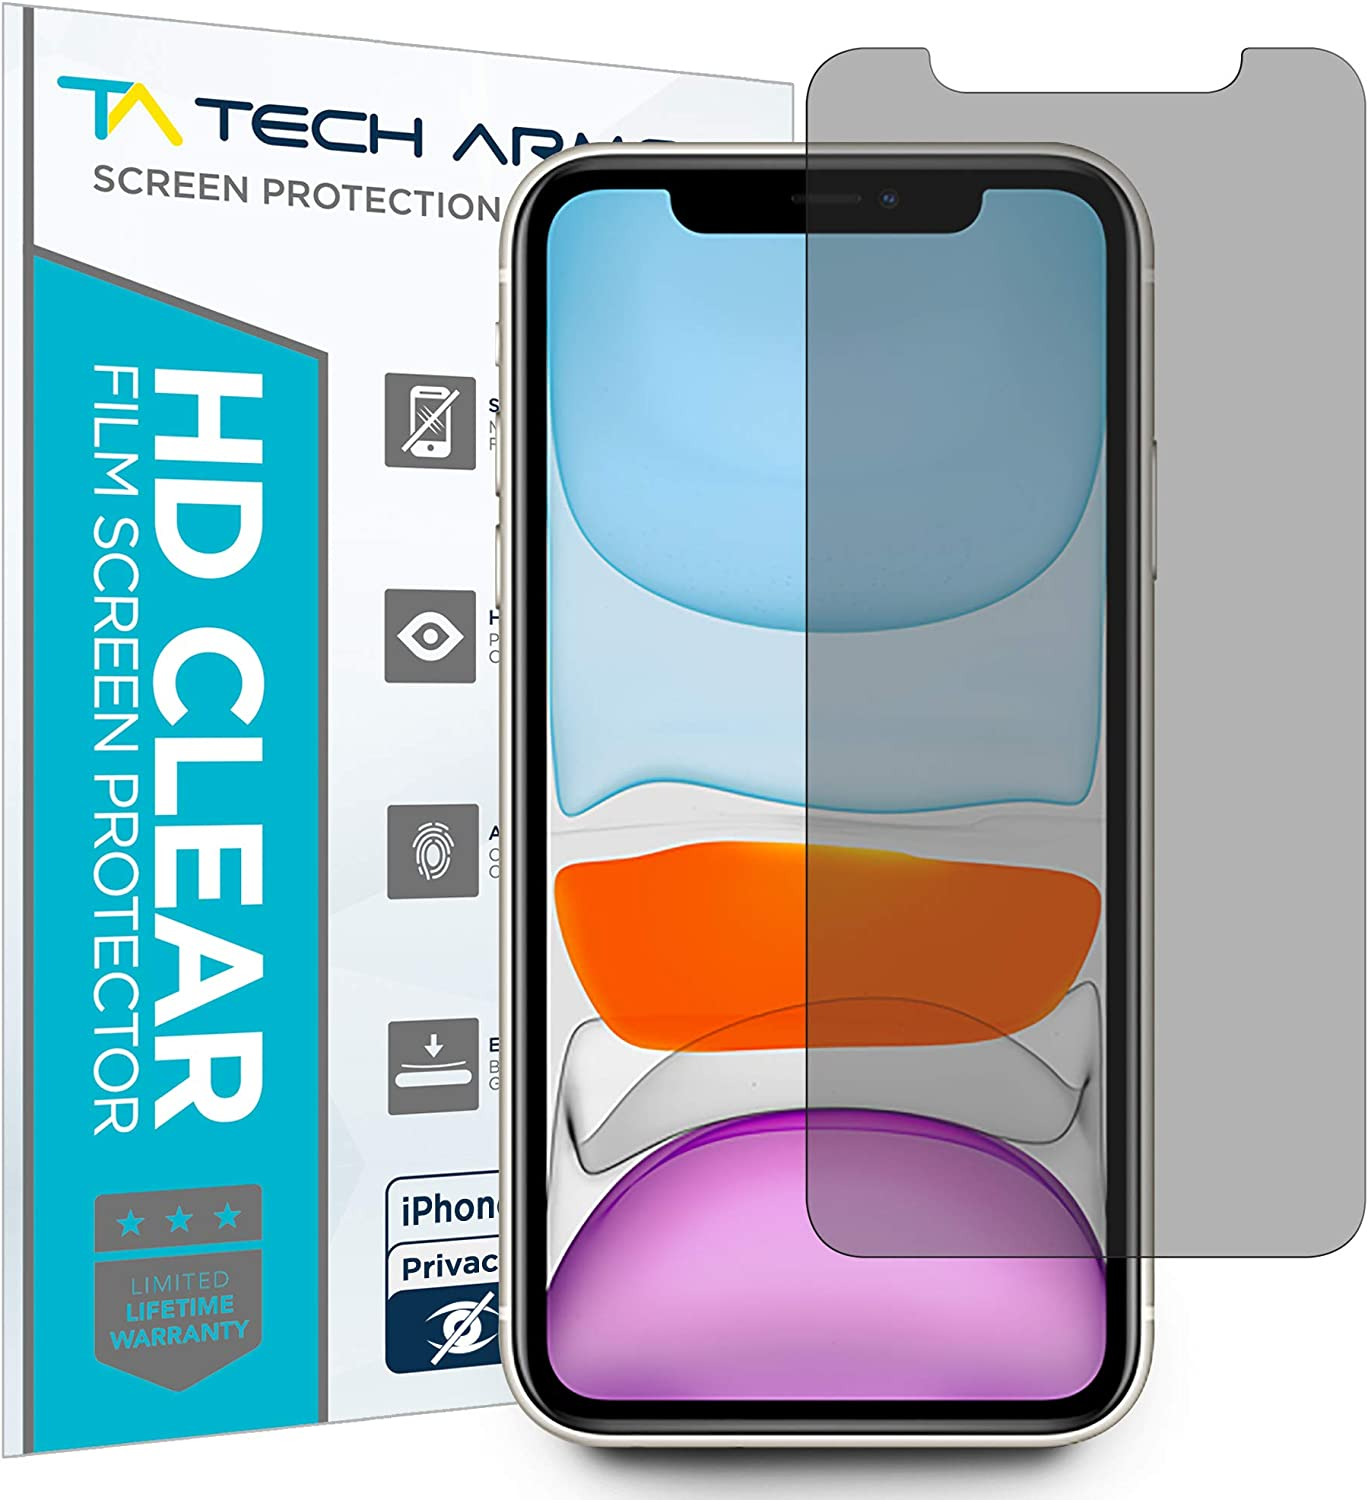 Tech Armor 4Way 360 Degree Privacy Film Screen Protector for New Apple iPhone 11 / iPhone Xr [1-Pack] Case-Friendly, Scratch Resistant, 3D Touch Accurate Designed for 2019 Apple iPhone 11